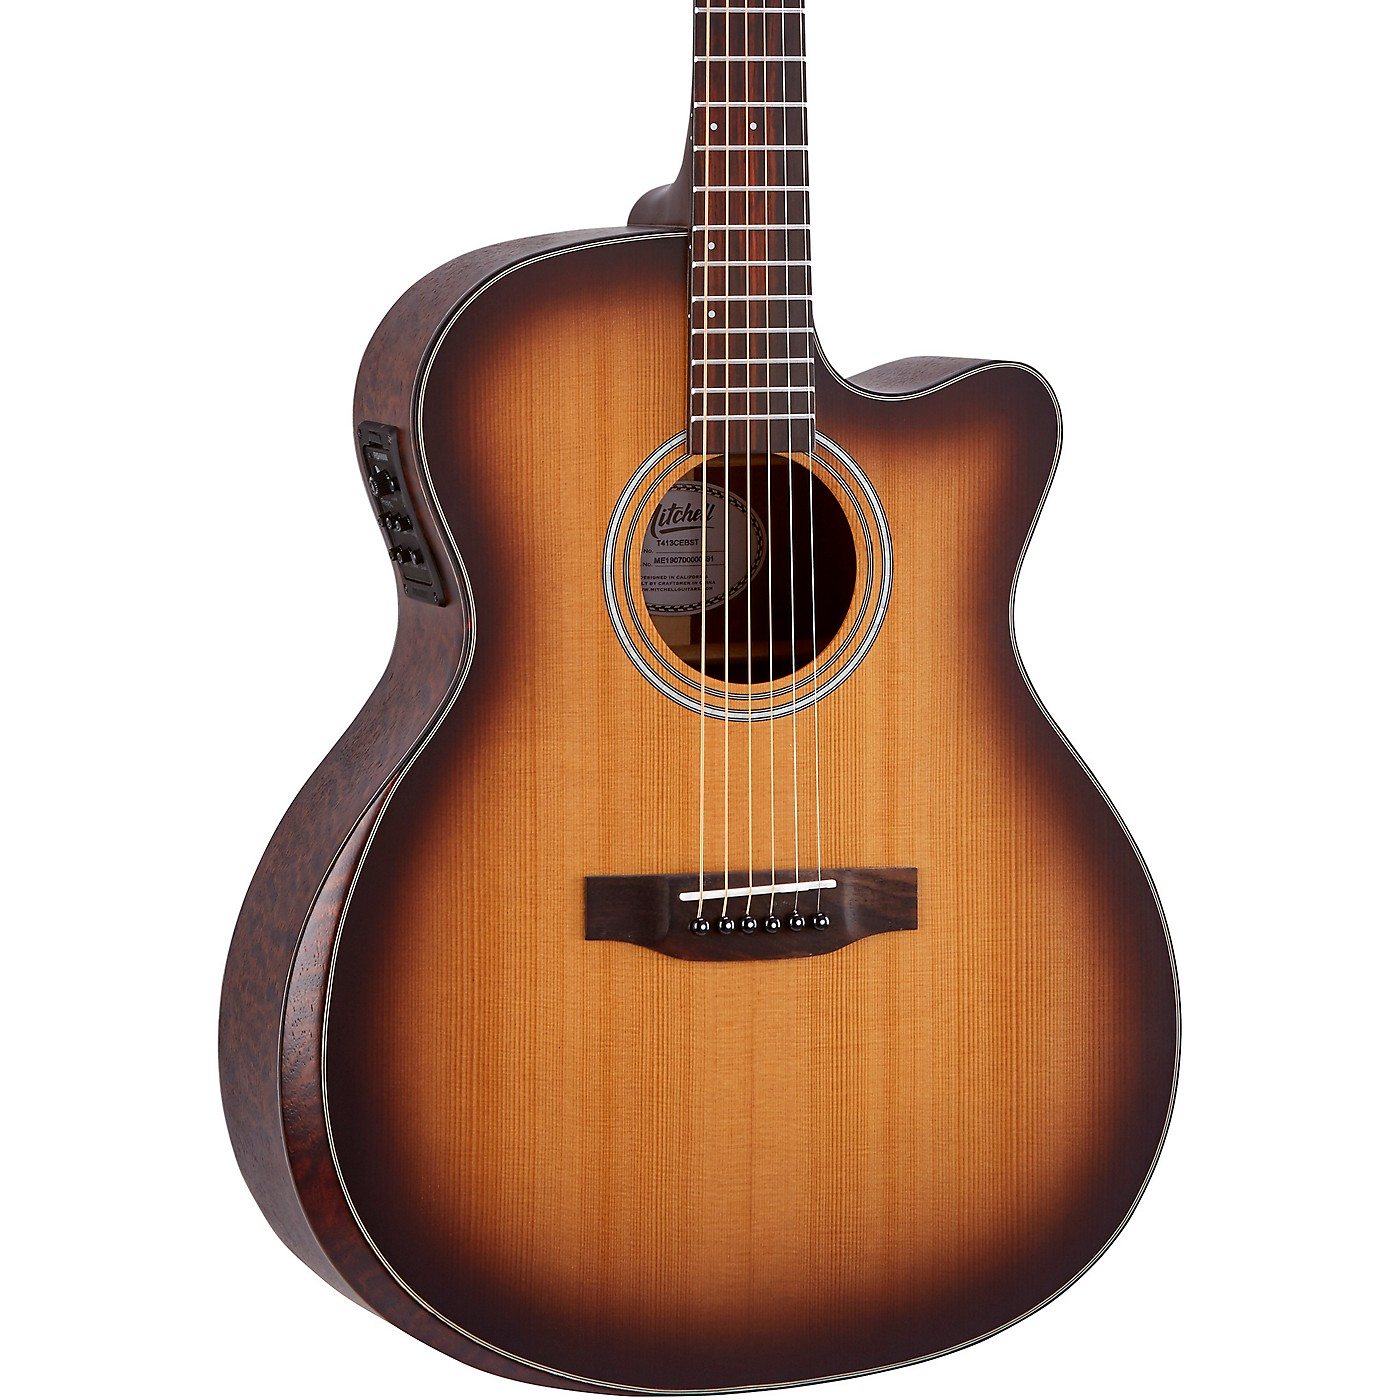 Mitchell Terra Series T413CEBST Auditorium Solid Torrefied Spruce Top Acoustic Electric Cutaway Guitar thumbnail